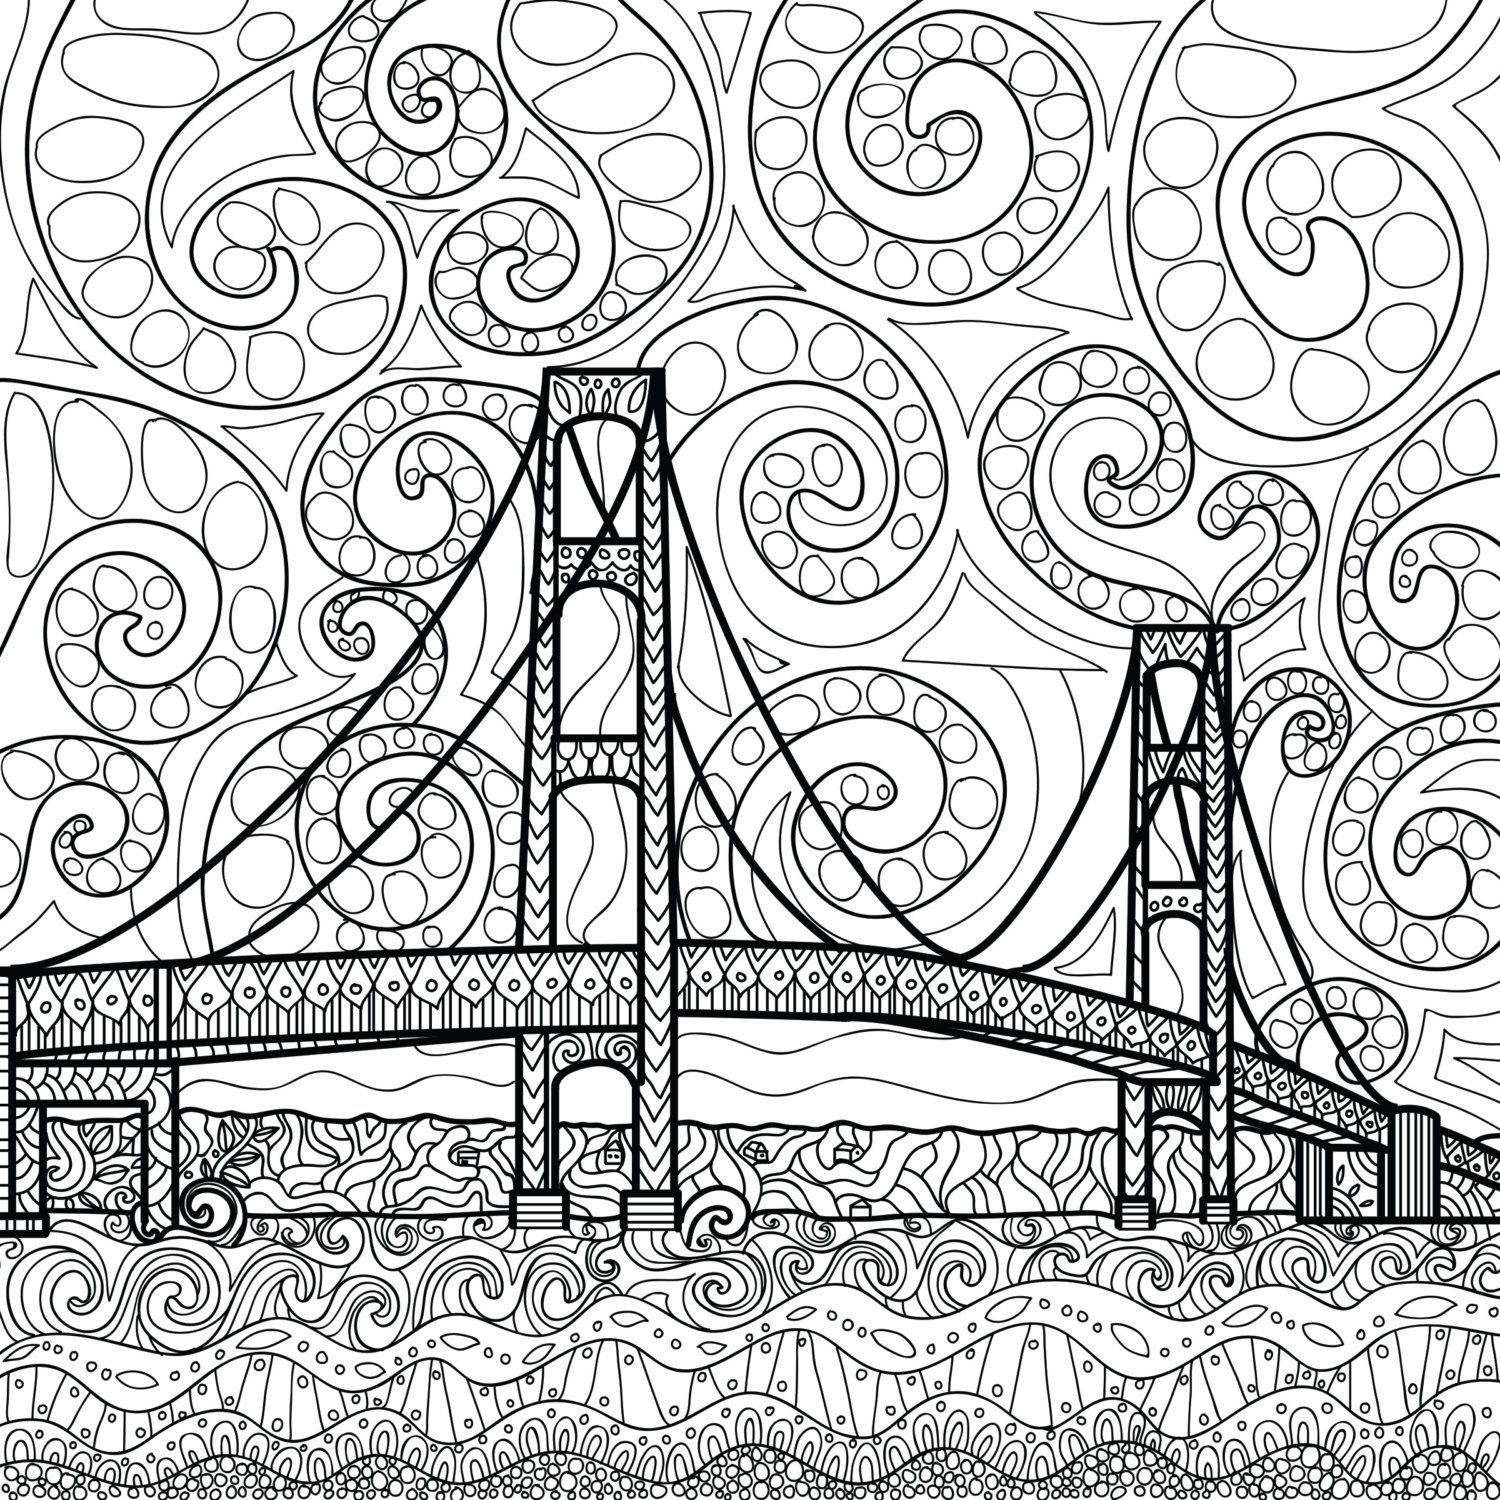 printable coloring page zentangle mackinac island by grannybag